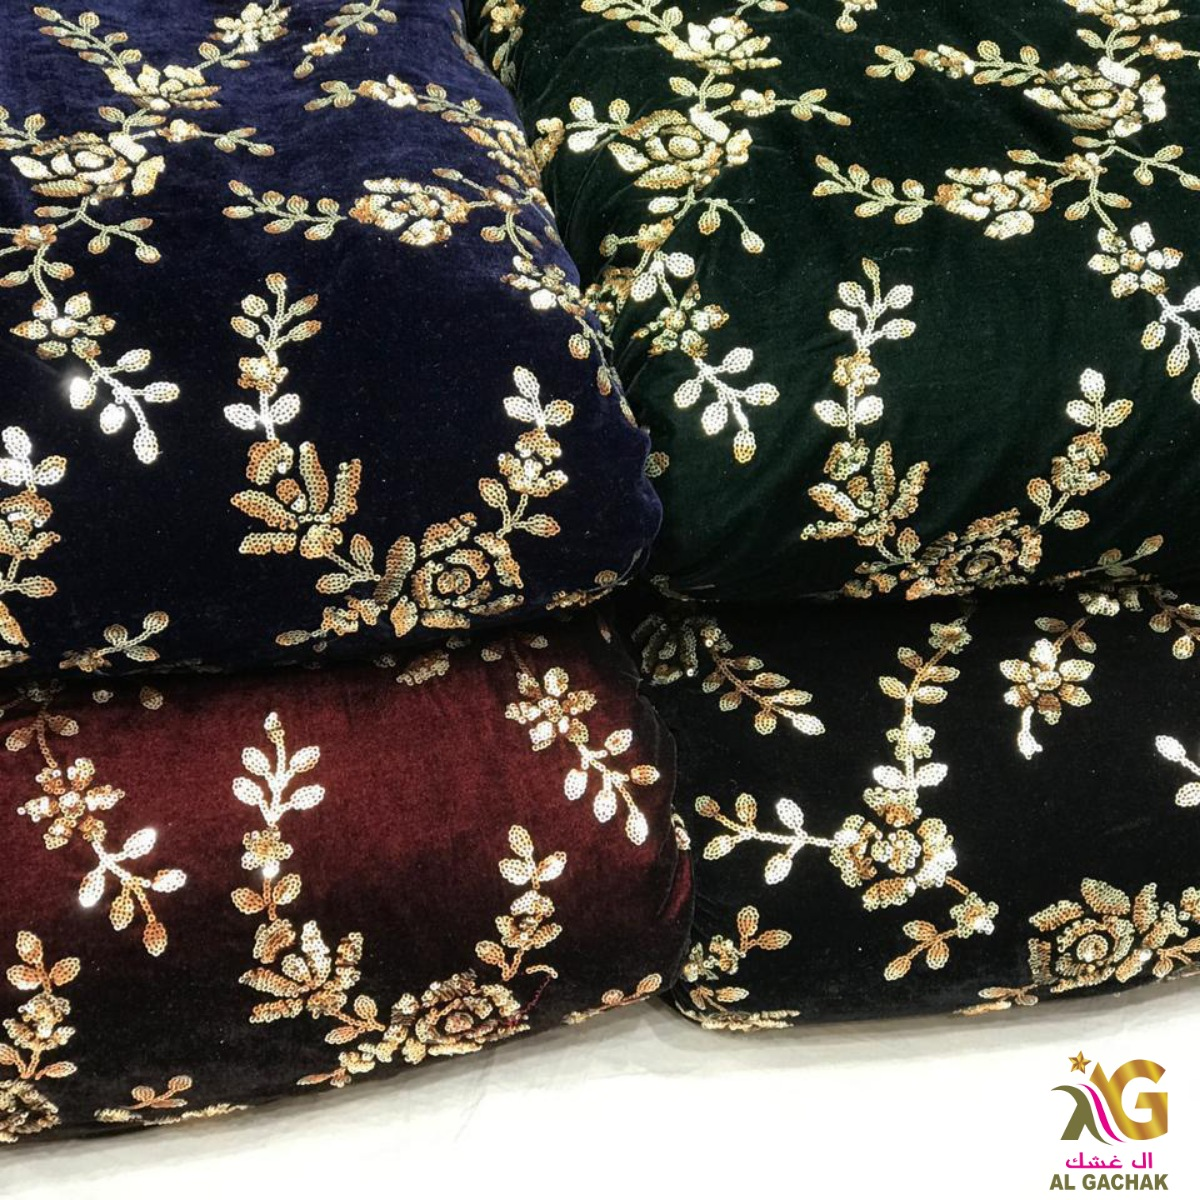 """Buy Latest Collection Of Silk Velvet Embroidery Fabric 😍 Width:44"""" inch Price :Approx 5.75 BHD/mtr MOQ:14 Meter Dealing in wholesale & for #boutique use! #l4l #F4F #Bahrain #boutiqueshopping #Like #fashiondesigner #follo #ClothingBrand #Clothing #clothingline #fabrics #fabric"""